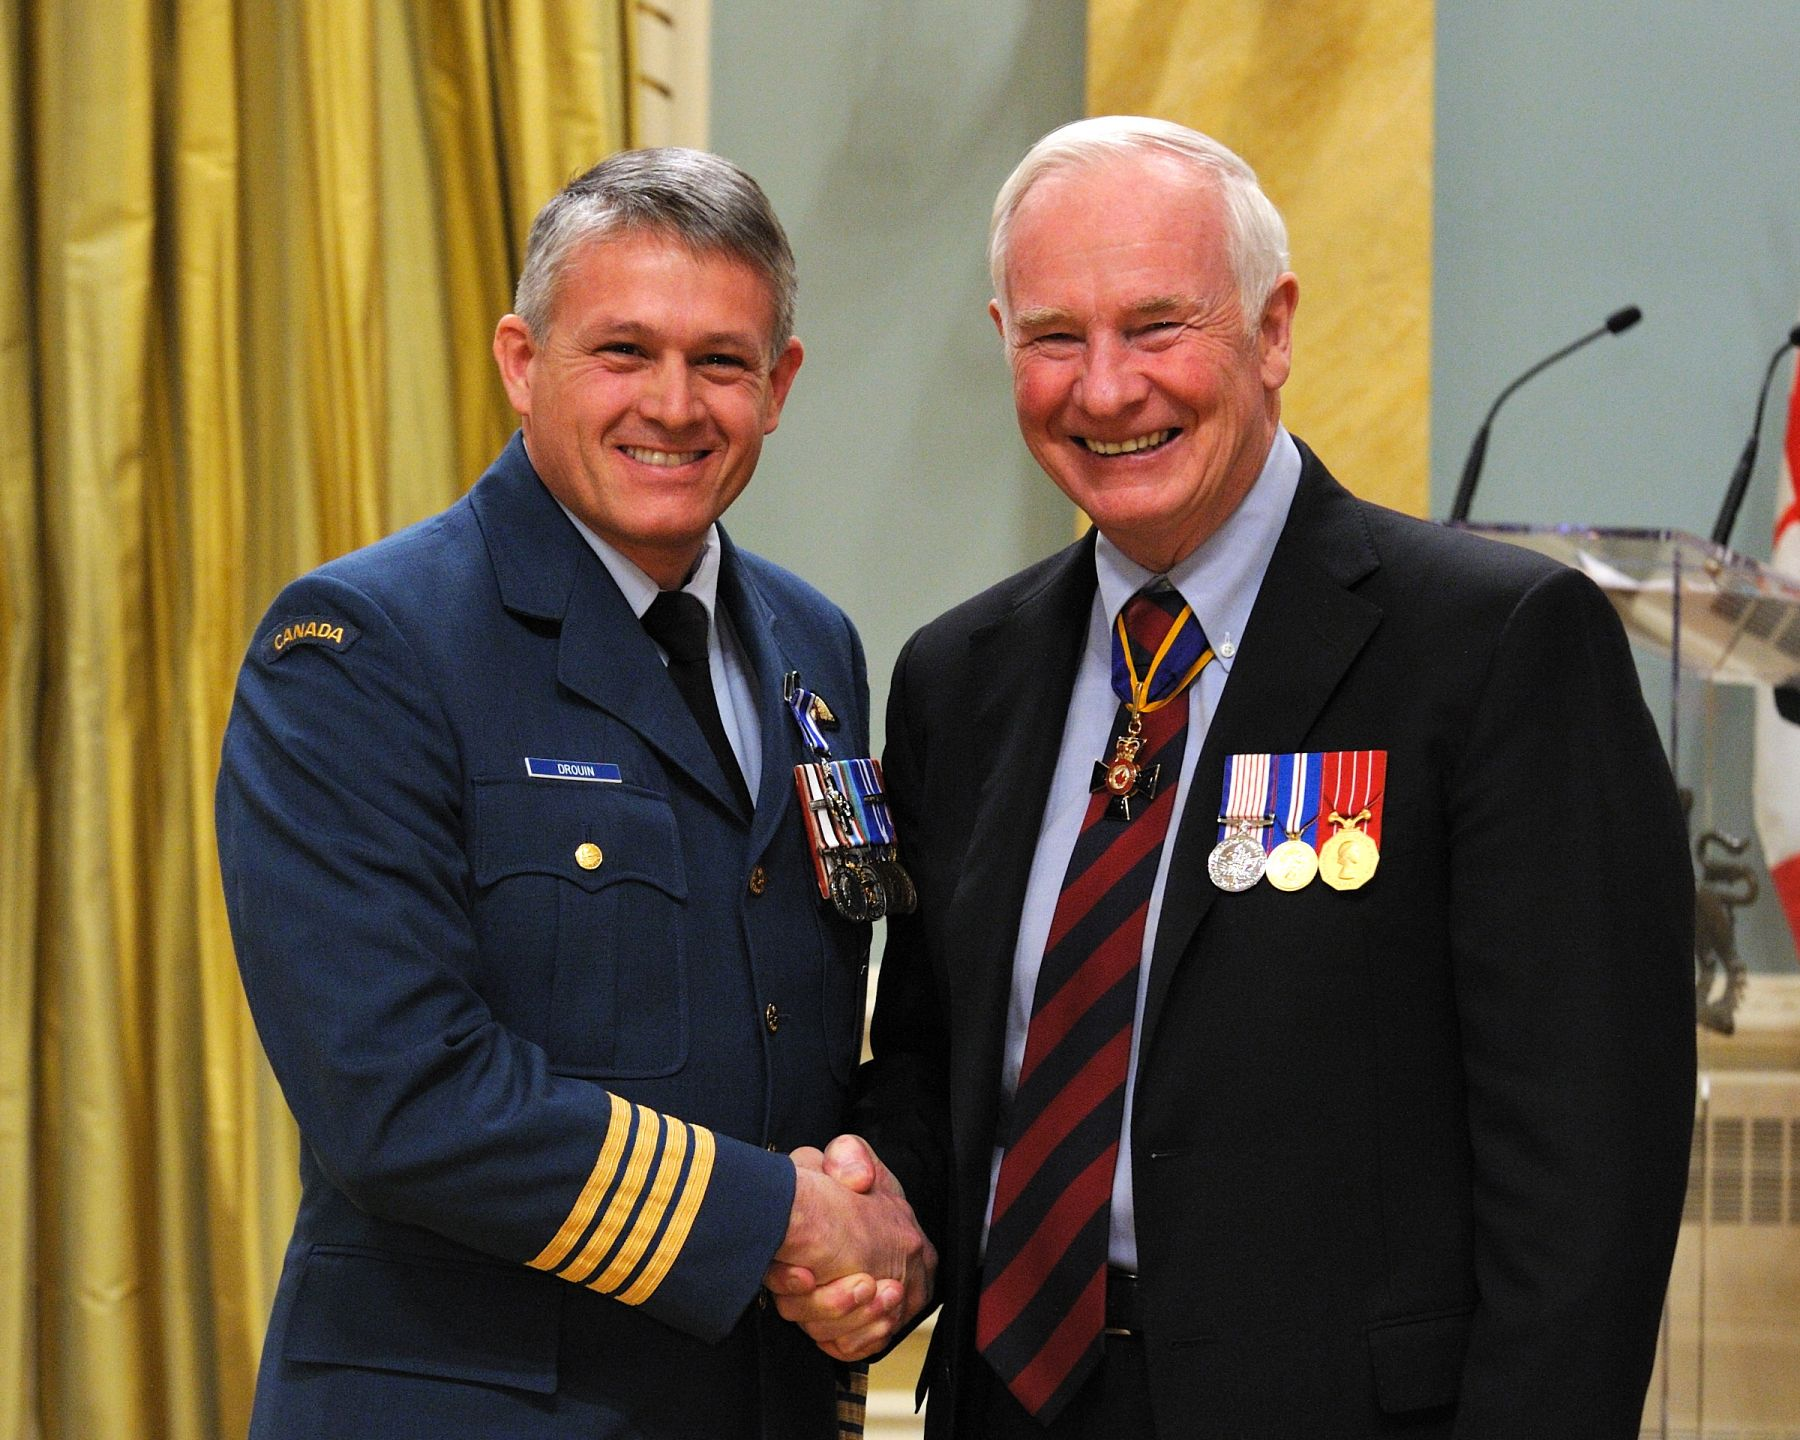 Colonel Christian Drouin, M.S.C., C.D., received the Meritorious Service Cross (Military Division) from His Excellency. As commander of the Air Wing in Afghanistan from November 2009 to September 2010, Colonel Drouin was instrumental in developing the squadron's capability so that it could fully support operations. While promoting the strength of combat aviation to an unprecedented degree, he ensured Canada's leadership within several multinational operations, including one of the largest airmobile operations in the history of Canada's efforts in Afghanistan. Colonel Drouin is a first-rate leader and innovator, and his outstanding command was pivotal to operational success.